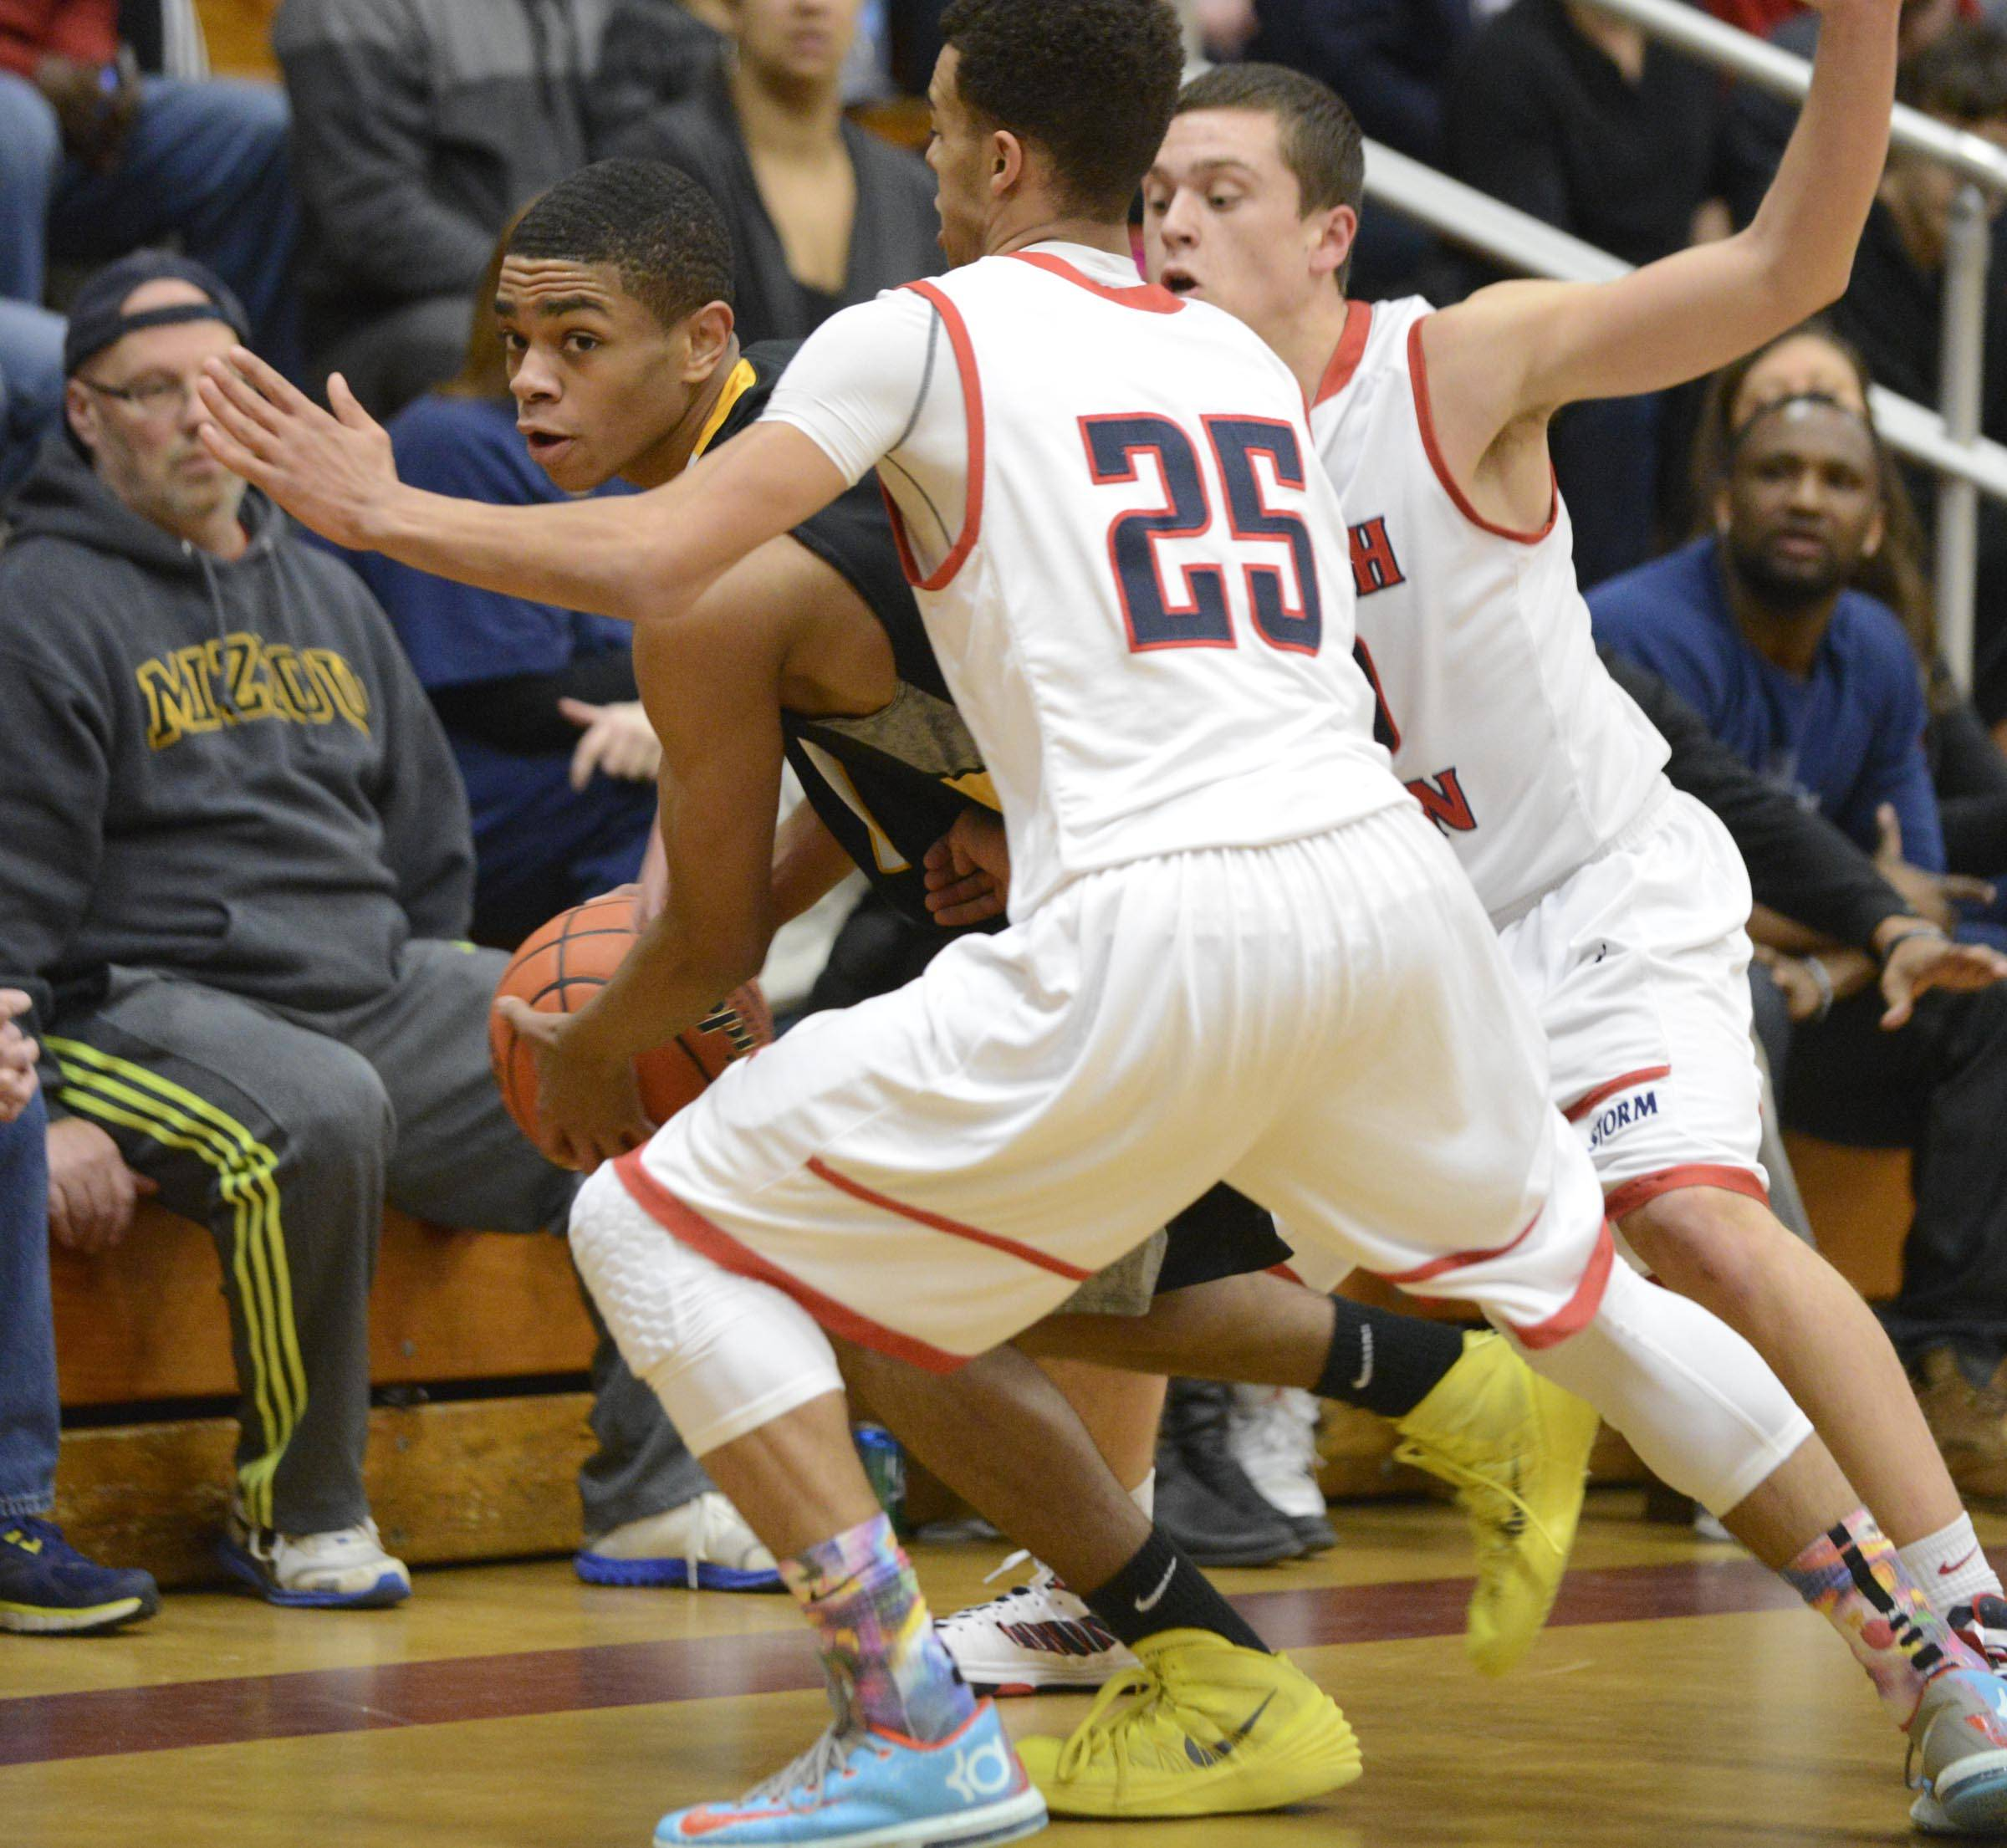 South Elgin's Darius Wells and Matt McClure, right, double team Jacobs' Kenton Mack Wednesday in the Elgin 4A sectional semifinal.